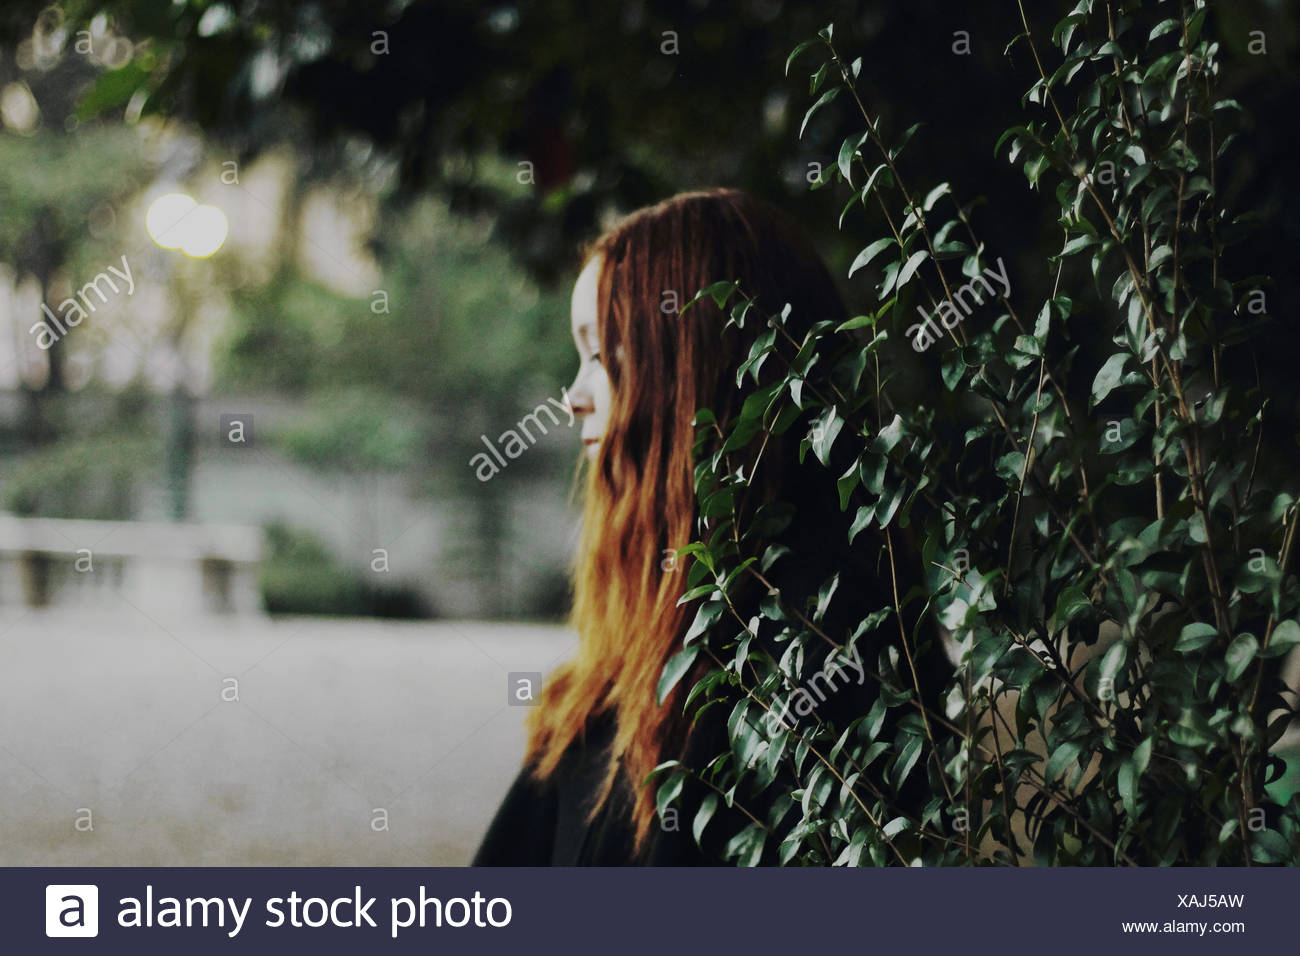 Side View Of A Thoughtful Teenage Girl Against Leaves - Stock Image